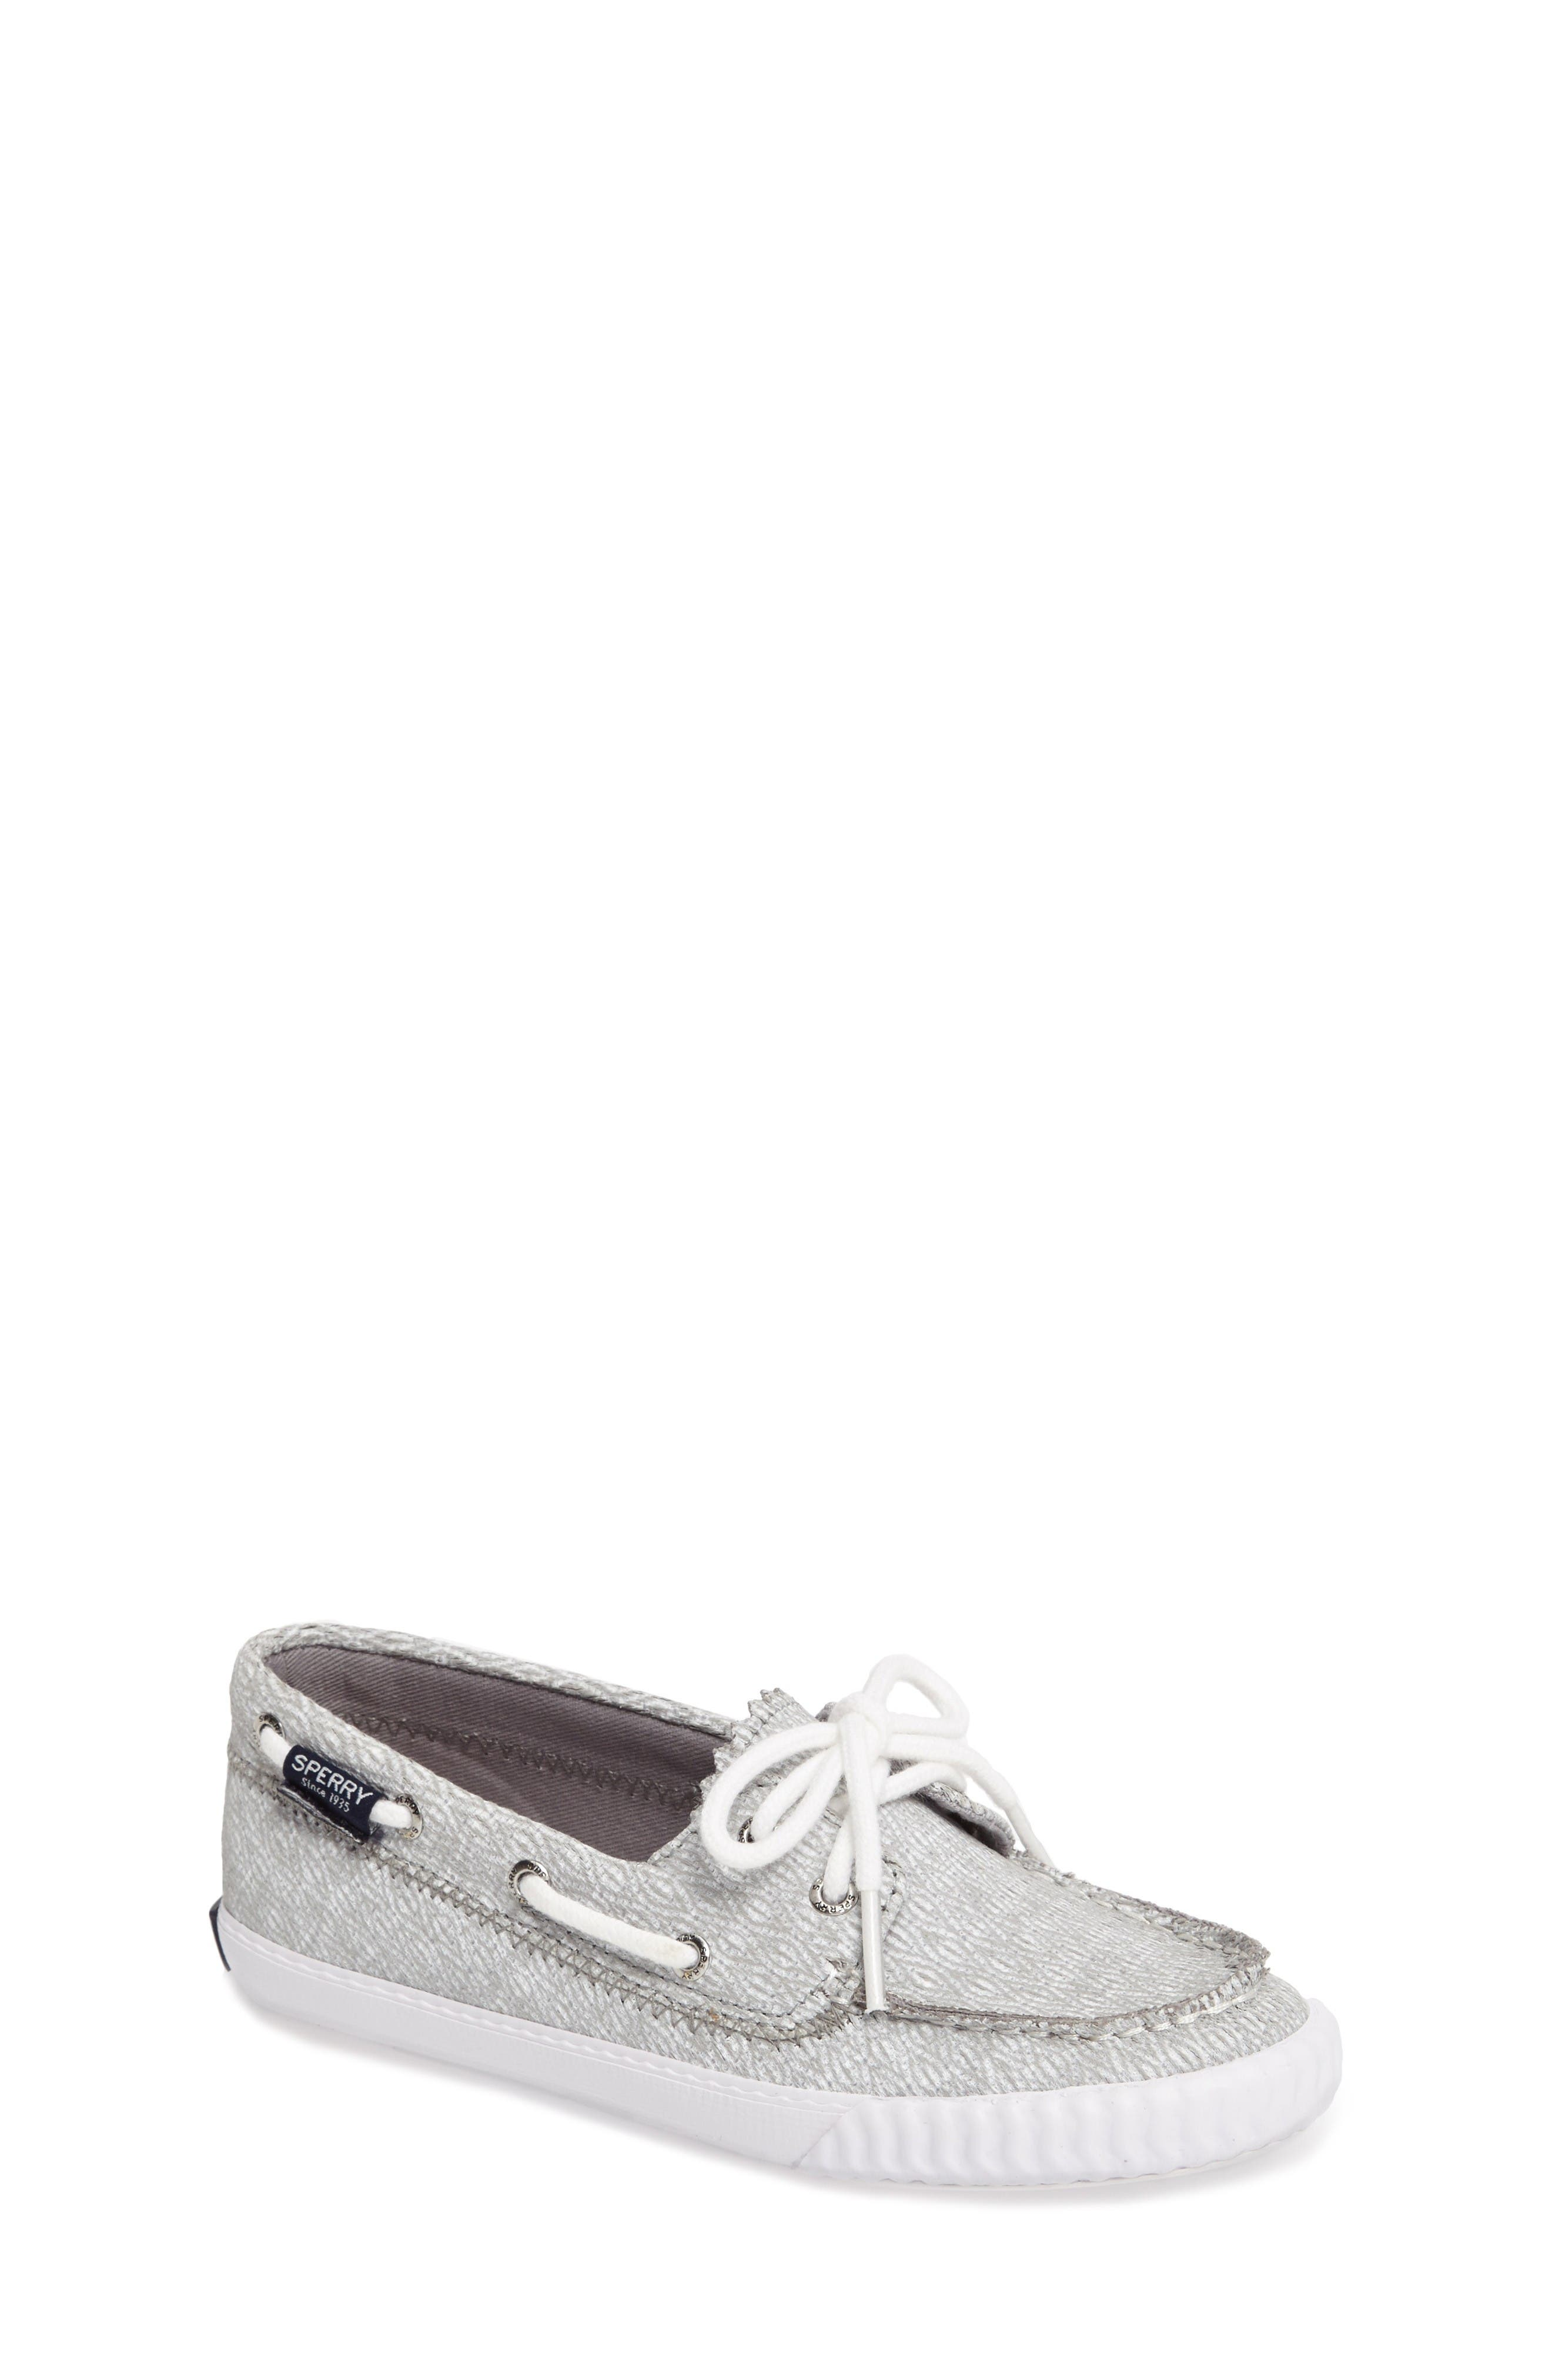 Sperry Kids Sayel Boat Shoe (Little Kid & Big Kid)